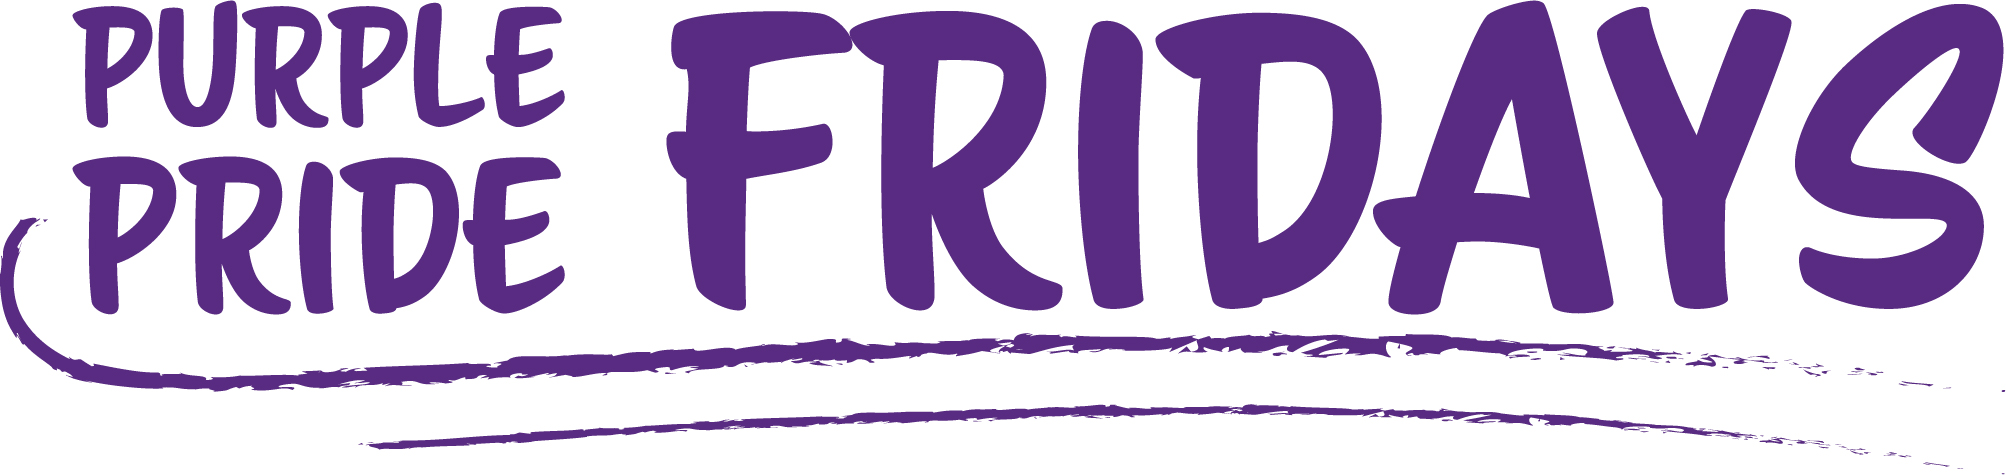 Purple Pride Friday Logo